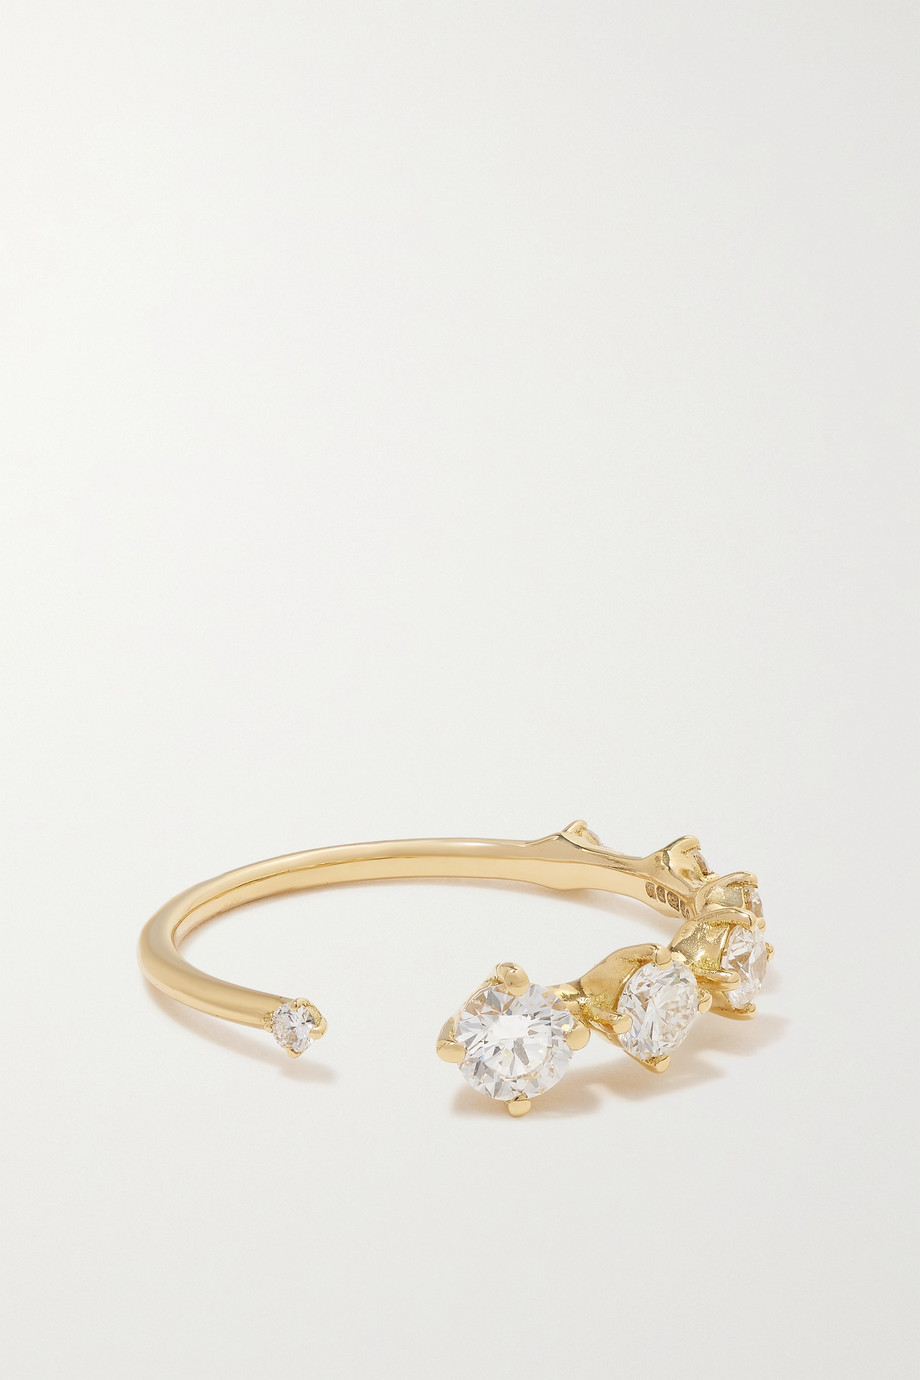 Fernando Jorge Sequence 18-karat gold diamond ring